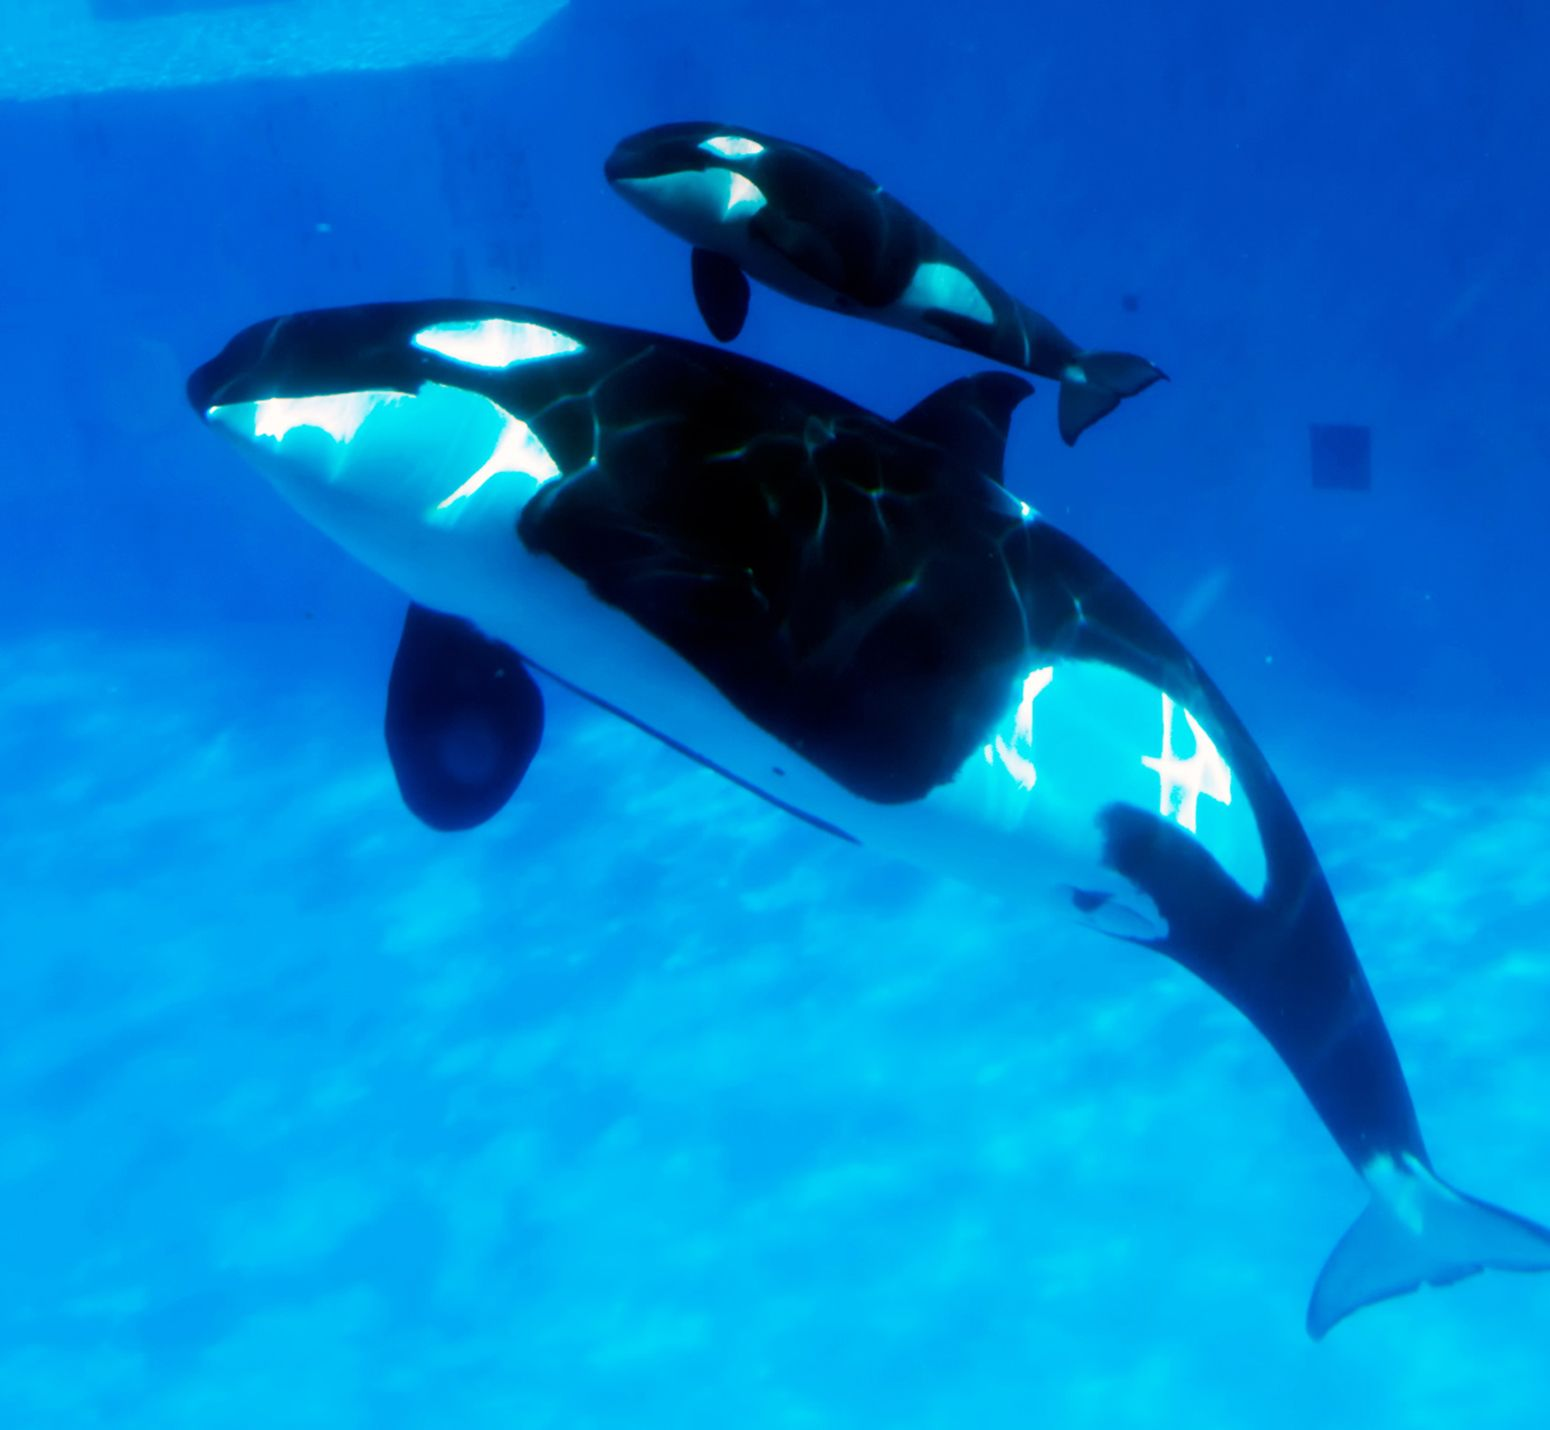 Baby orcas being born wallpaper other animals pinterest baby orcas being born wallpaper altavistaventures Images